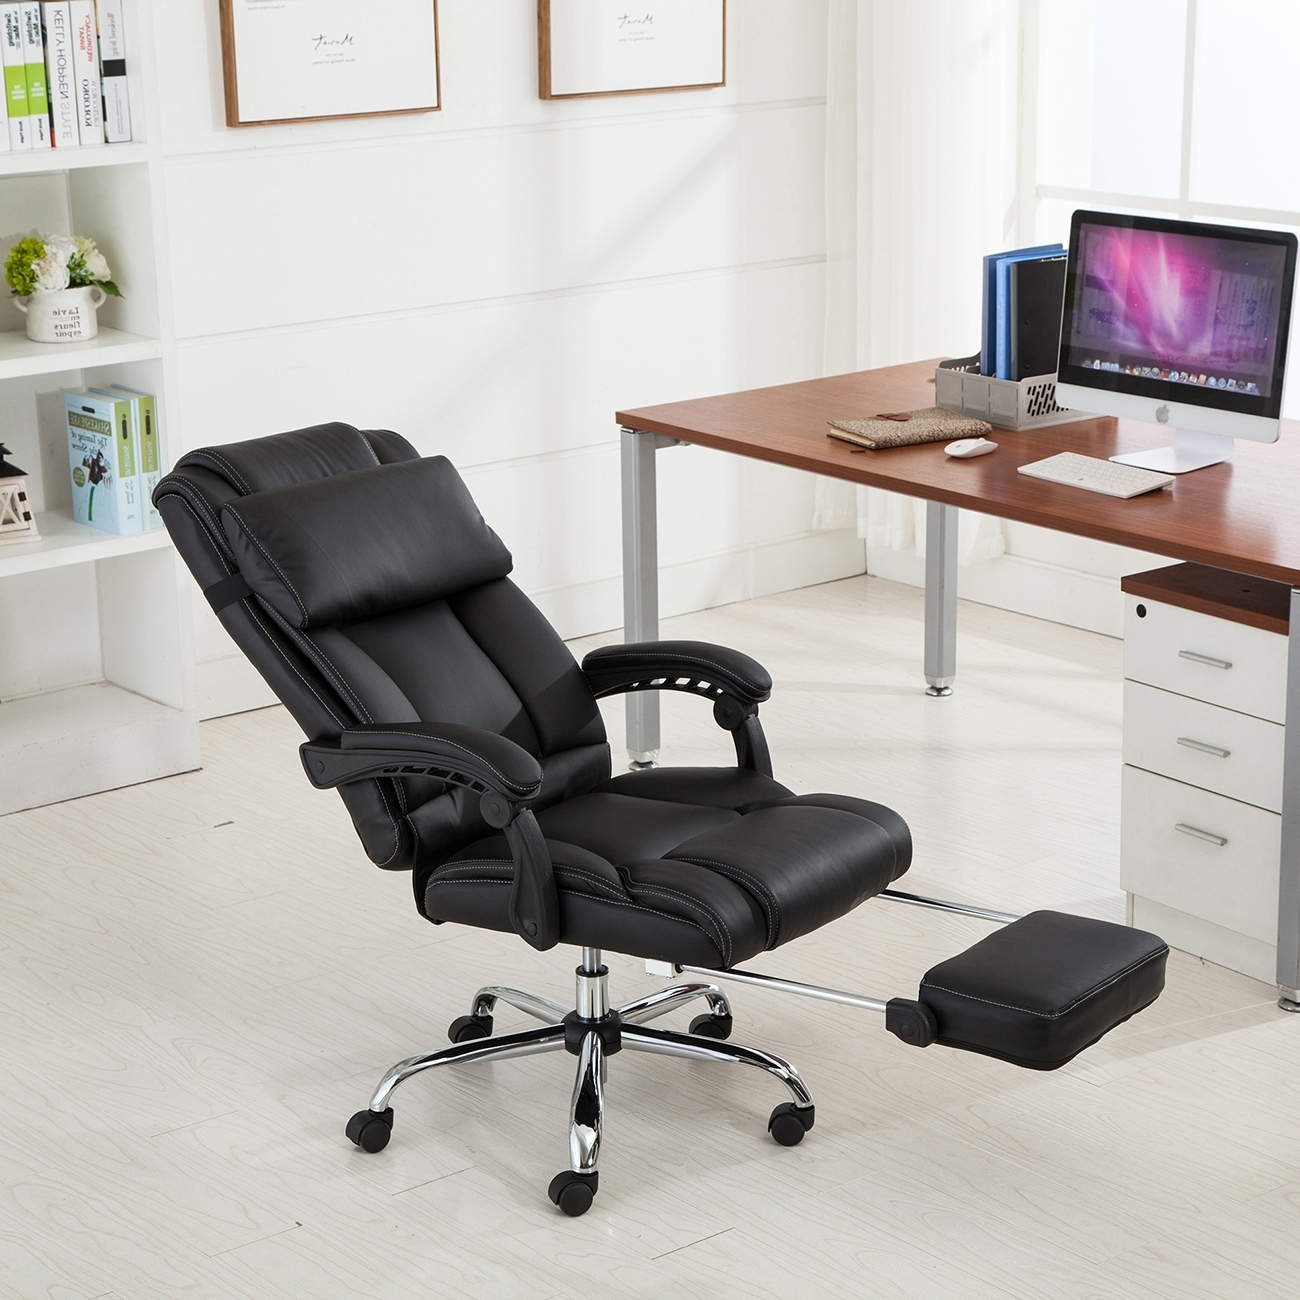 Lounge Chairs And Office Chairs Inside Executive Office Chairs With Leg Rest (View 13 of 20)